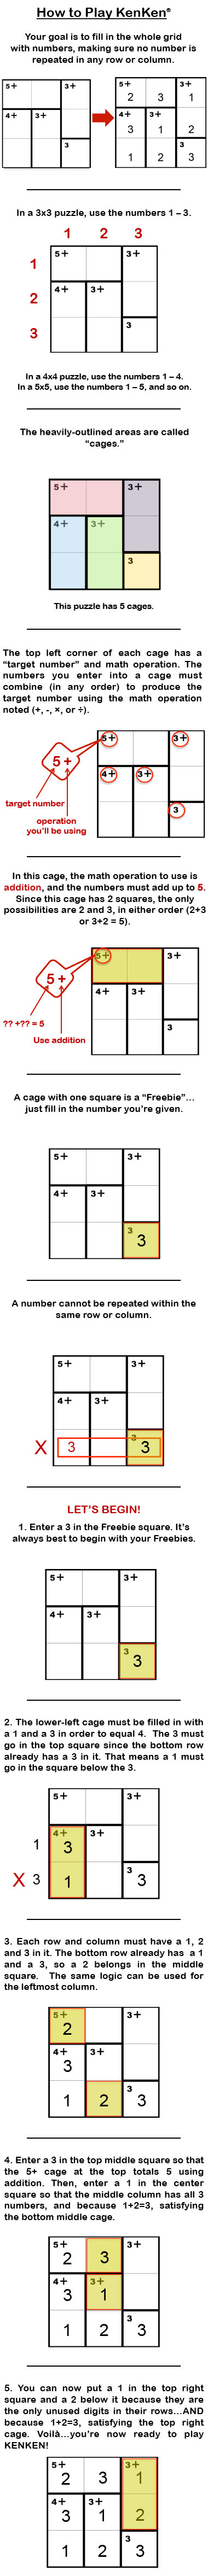 image about Printable Kenken Puzzles 9x9 referred to as How do I uncover KenKen guidelines? KenKen Puzzle